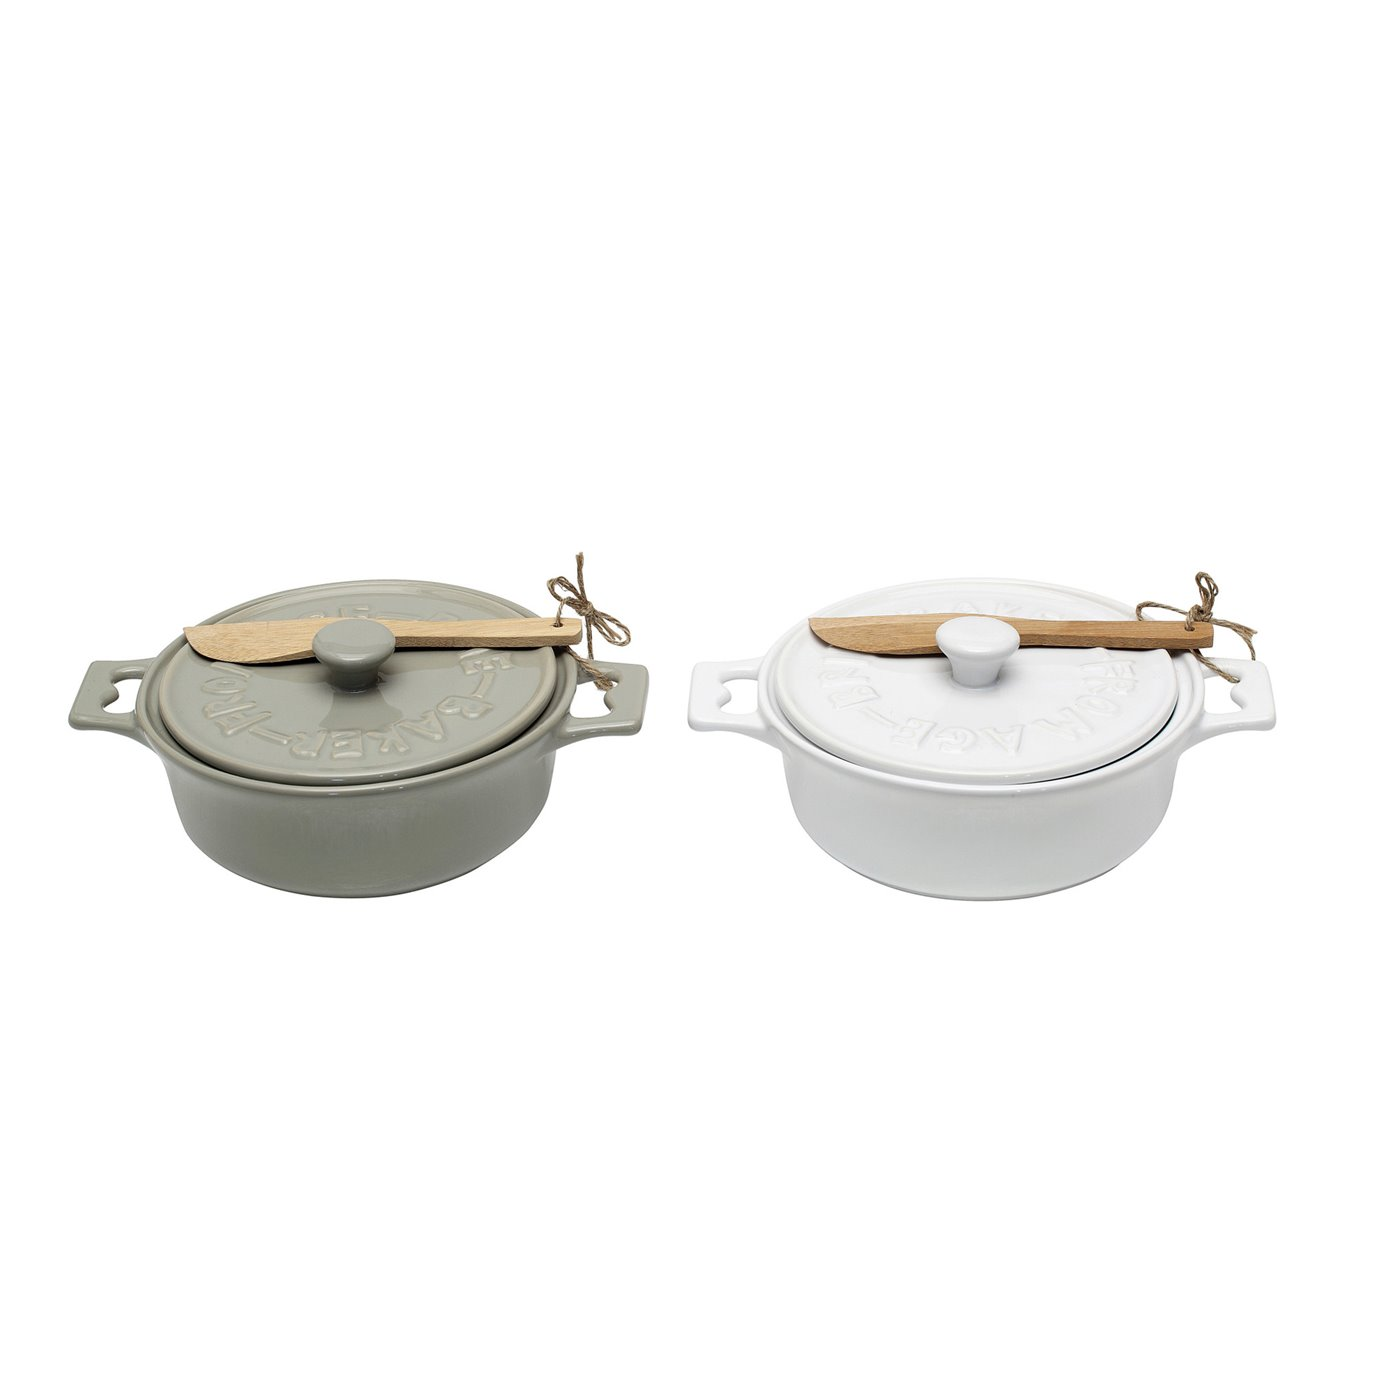 Brie Bakers with Lids & Wood Spreaders (Set of 2 Colors)